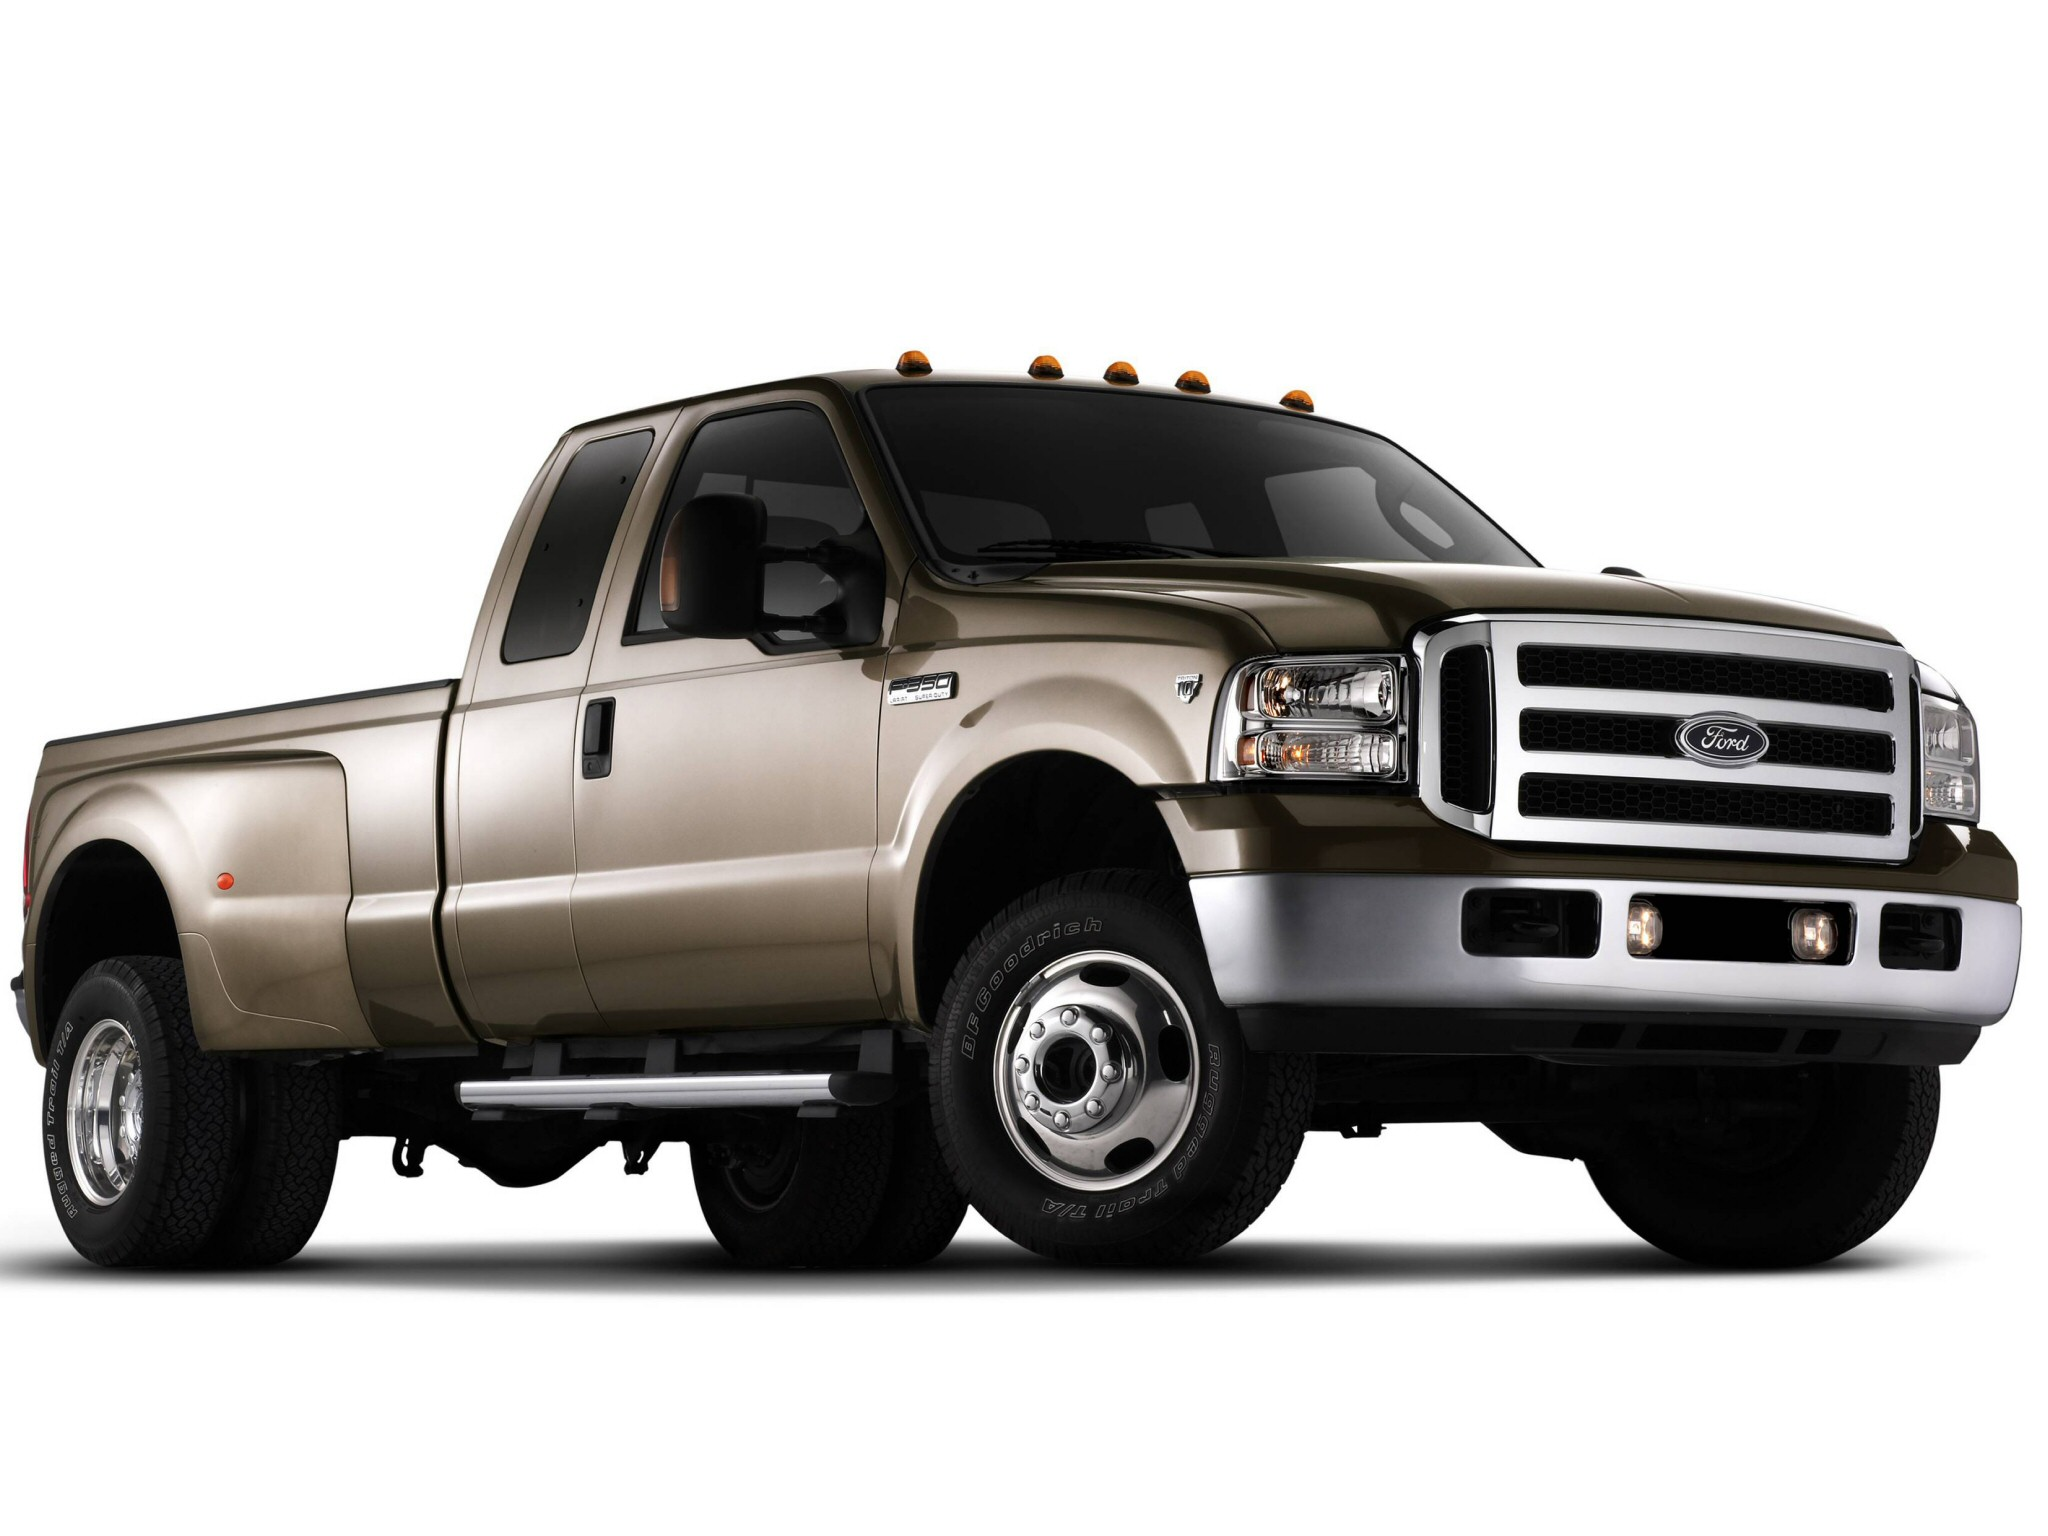 Ford F-350 #14